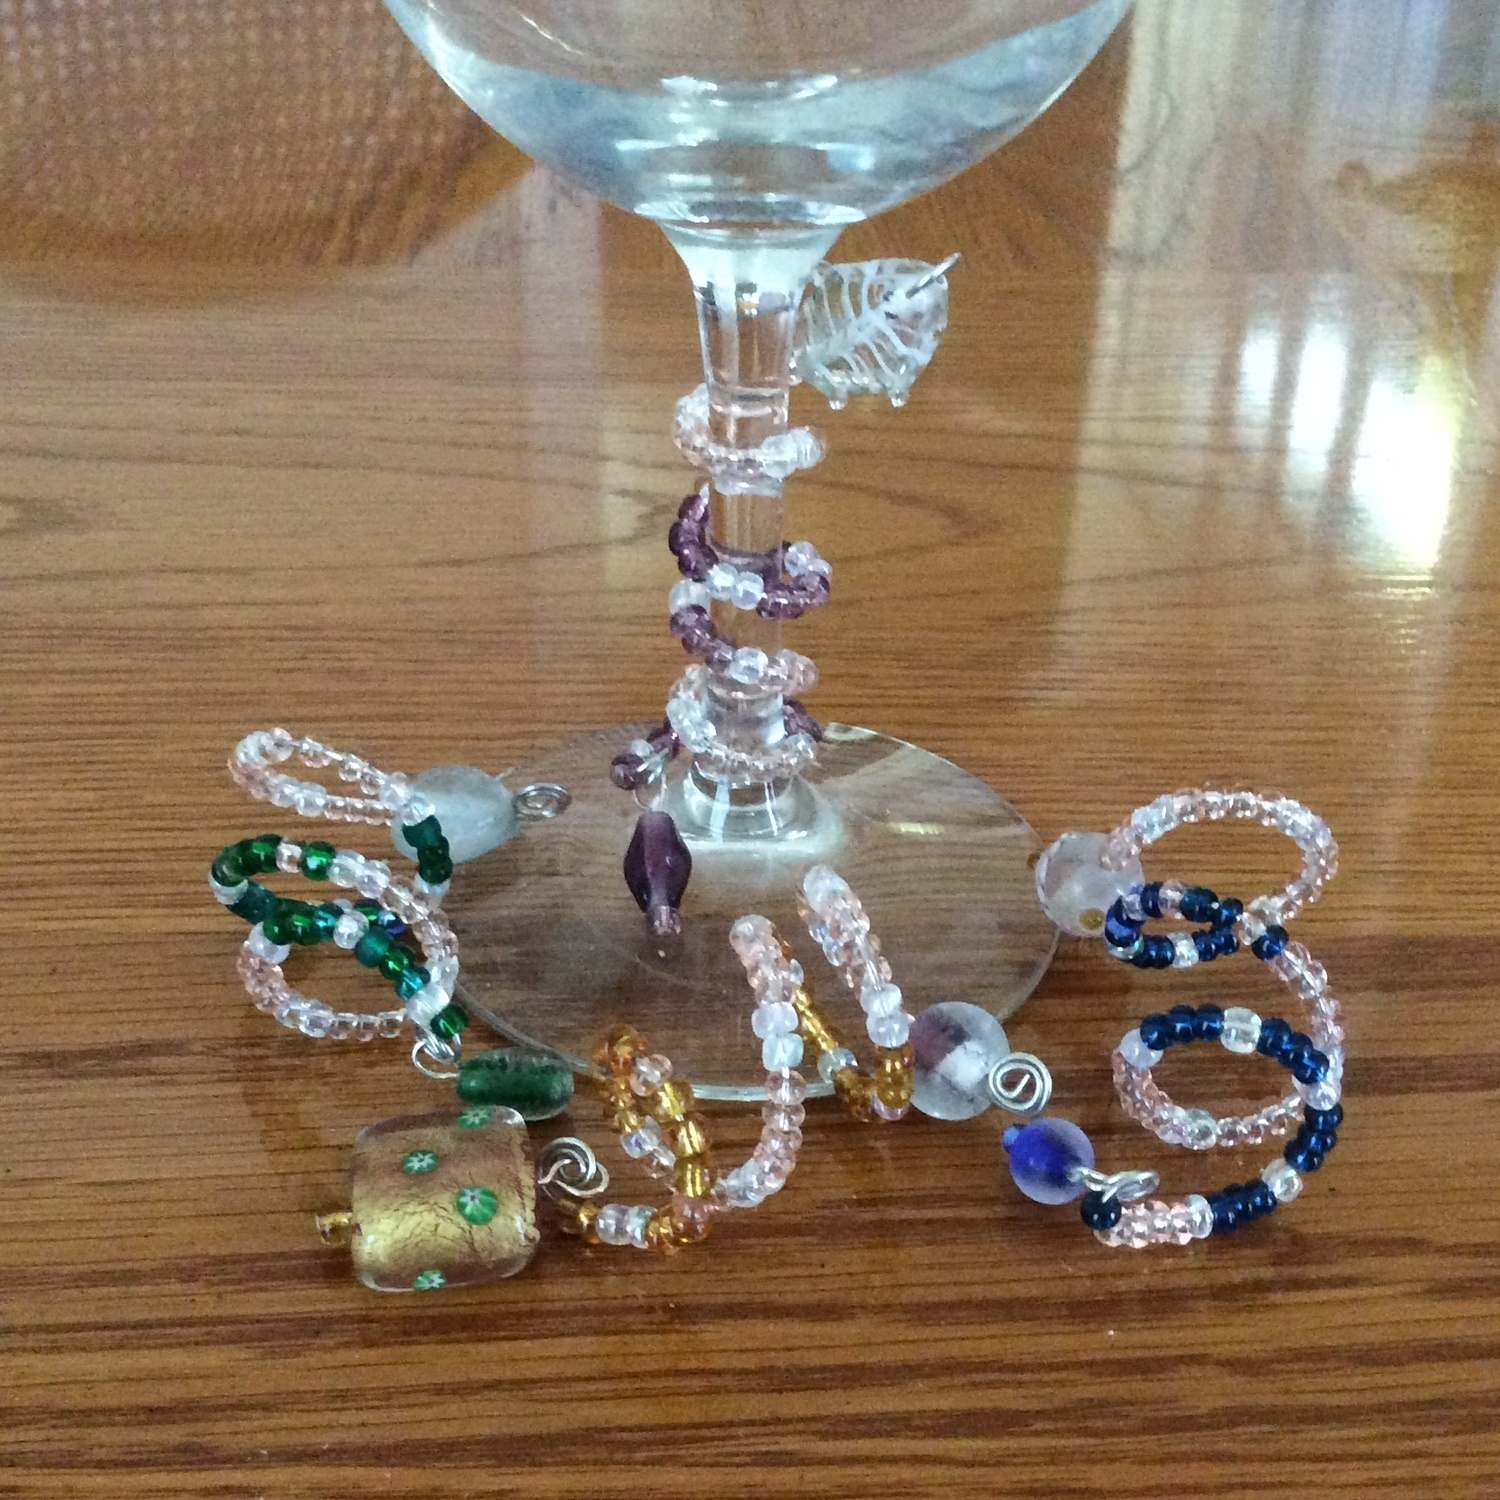 Wine charm set of 4 - available in Utensils and gifts